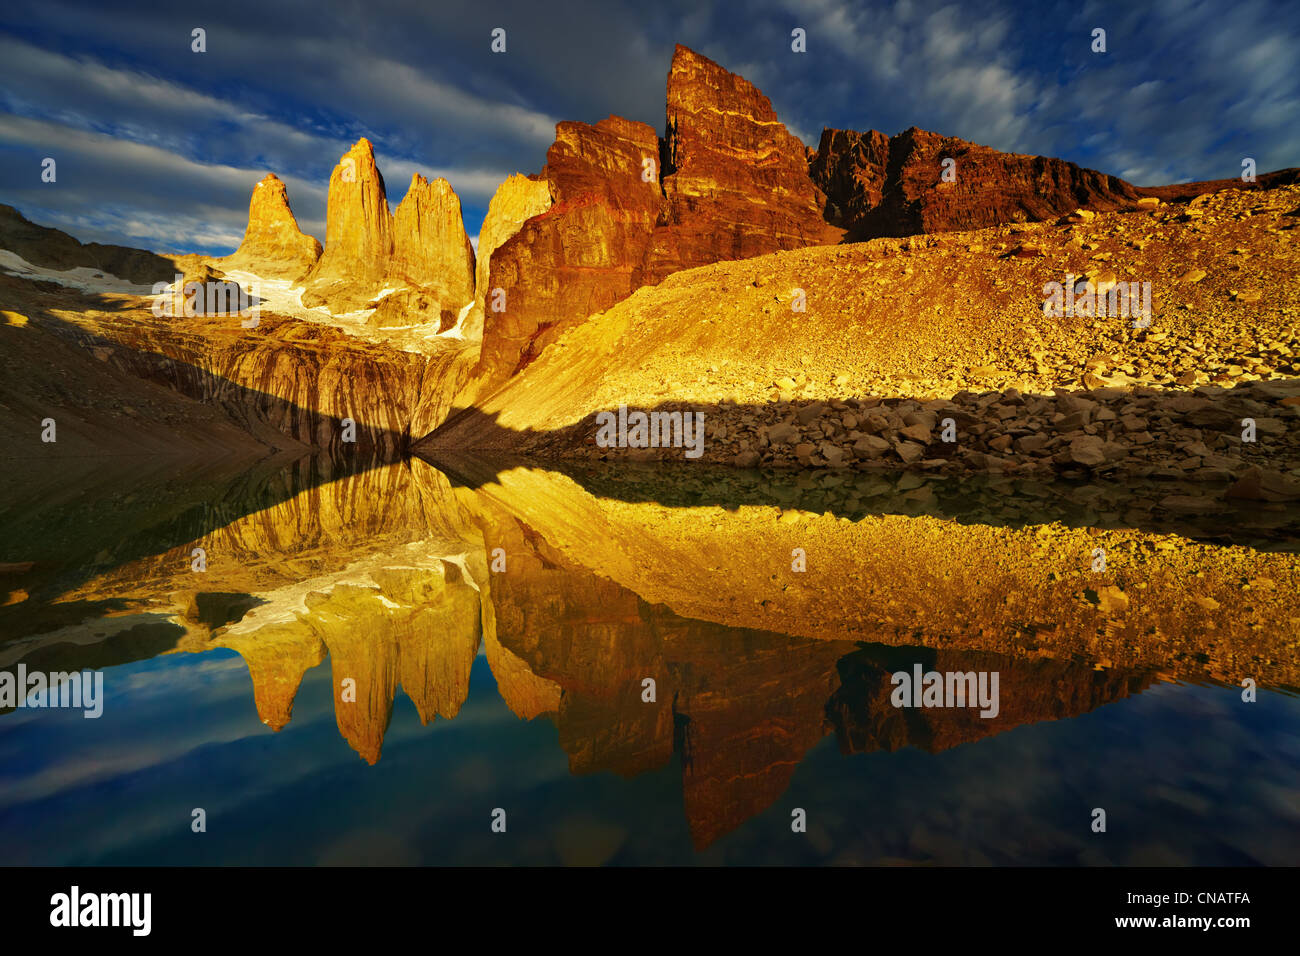 Towers with reflection at sunrise, Torres del Paine National Park, Patagonia, Chile - Stock Image